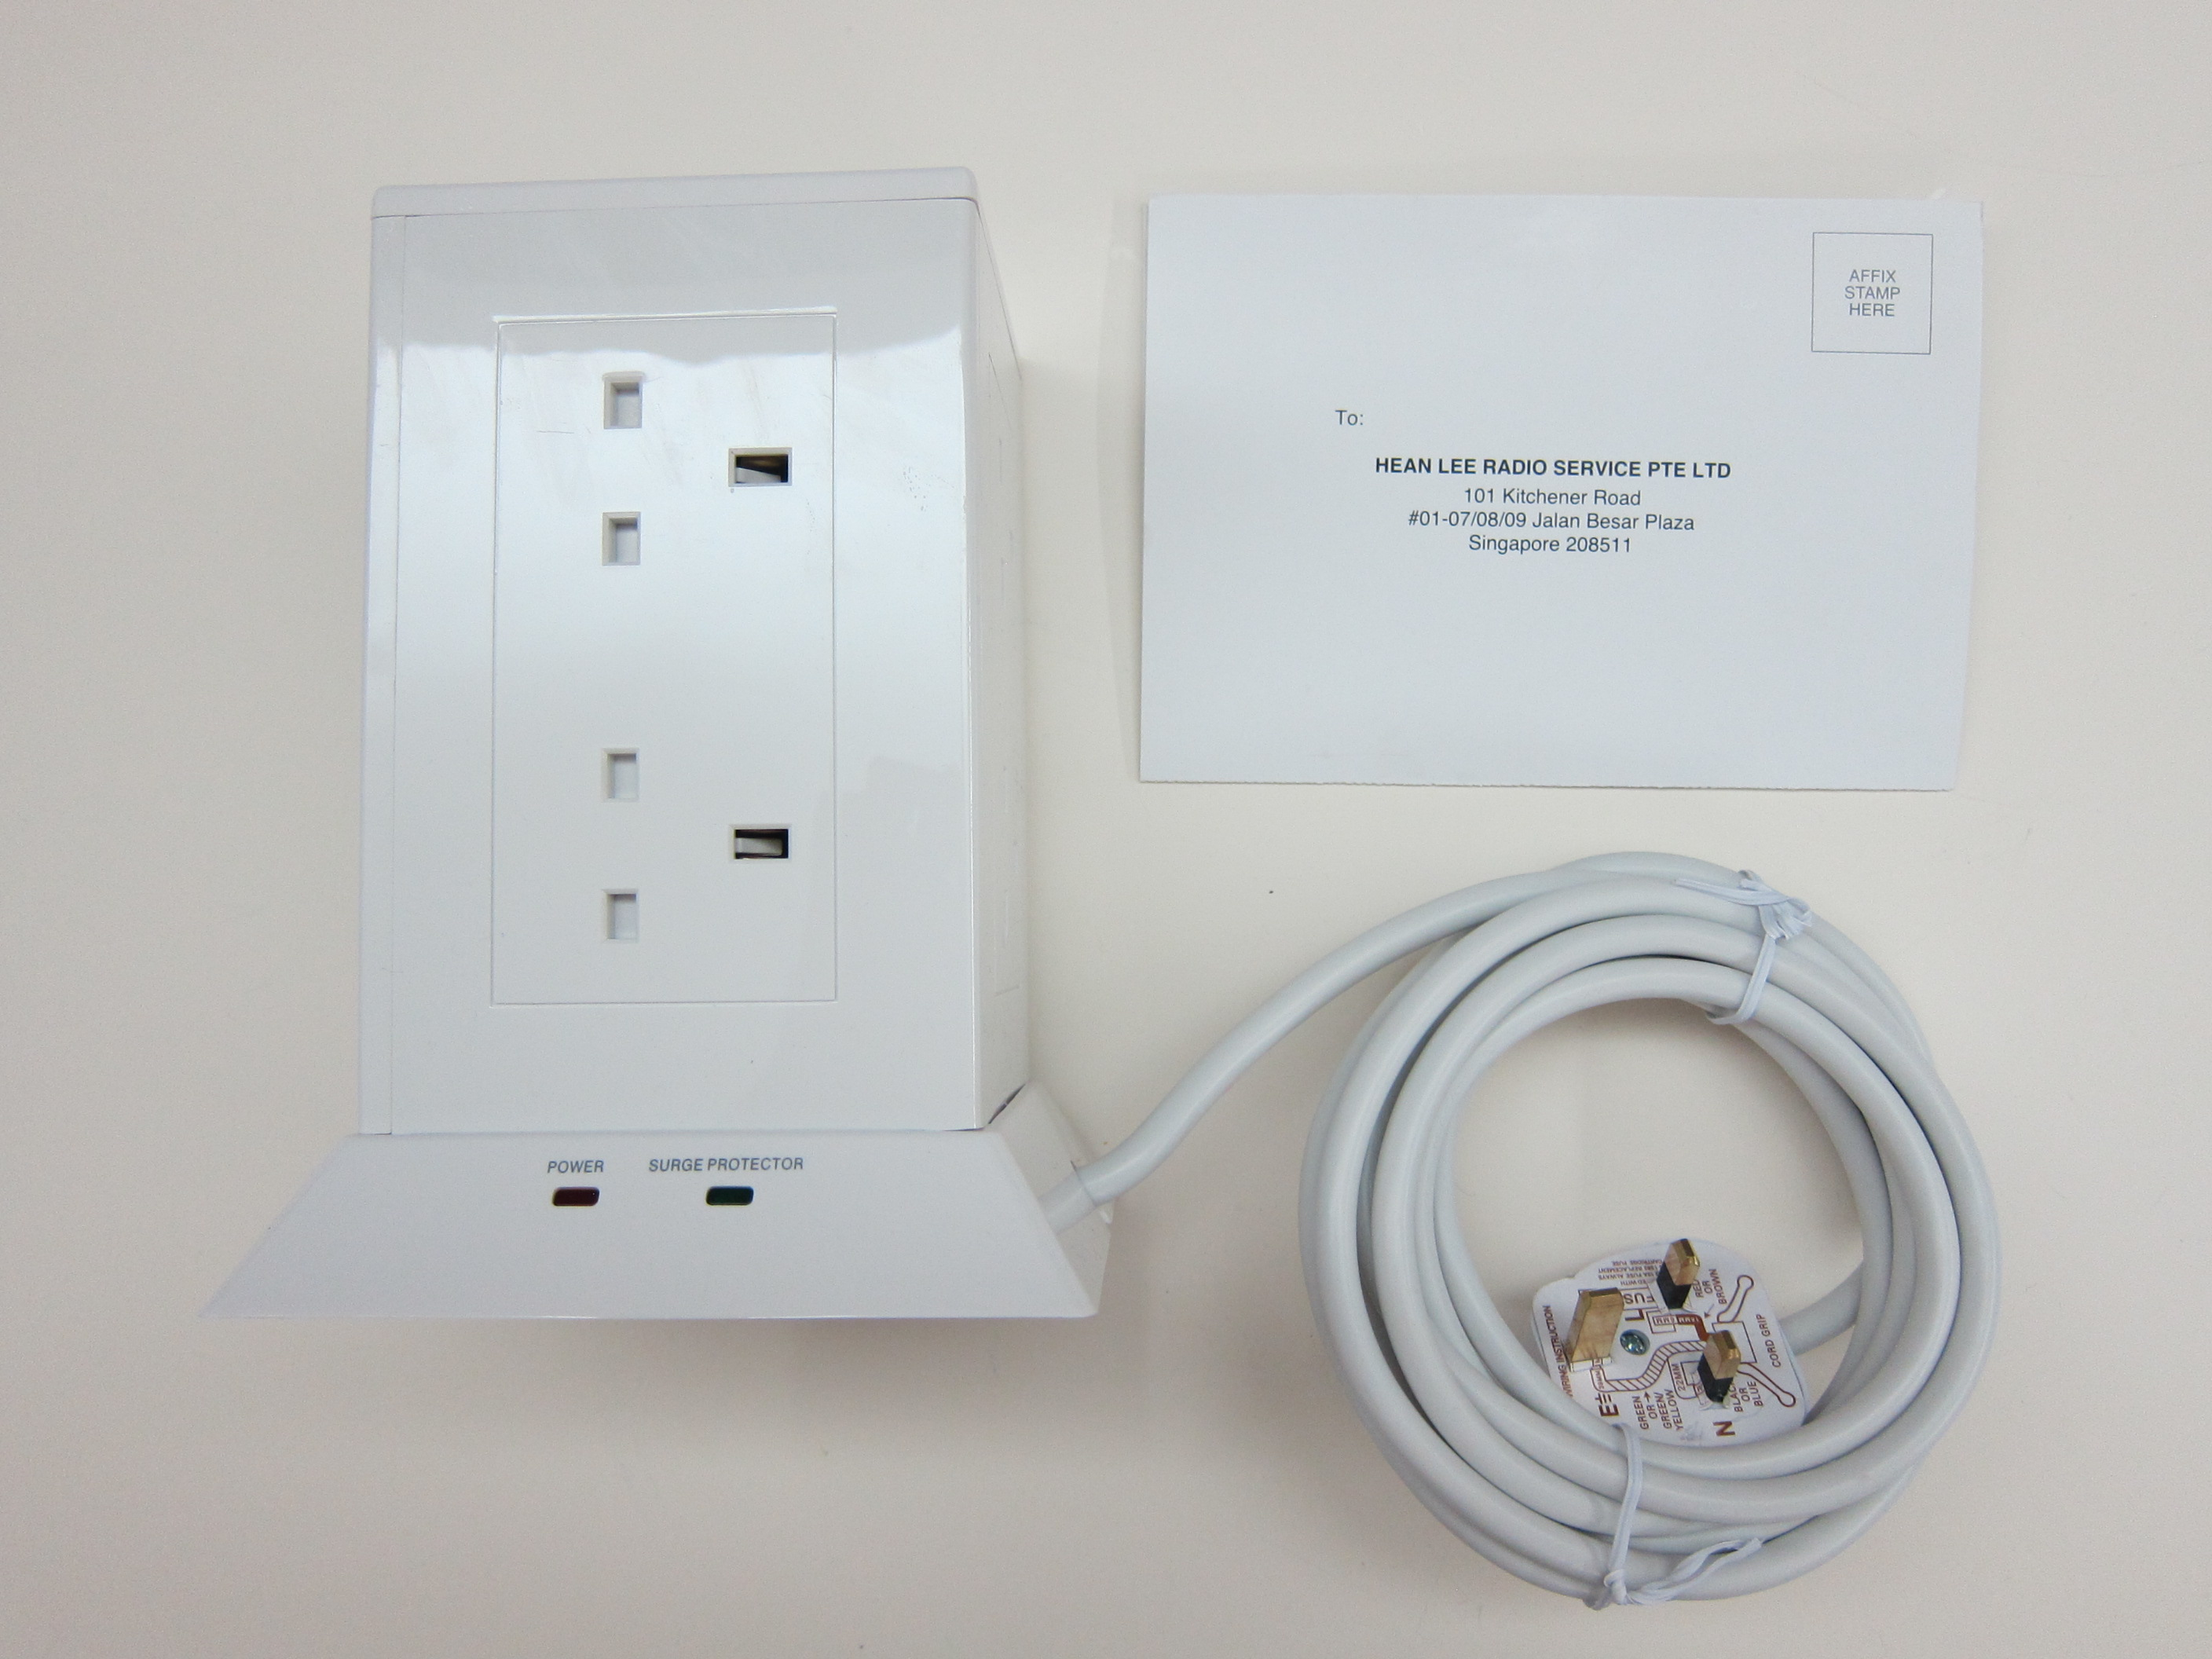 SoundTeoh Tower Socket With 9 Outlets « Blog | lesterchan.net